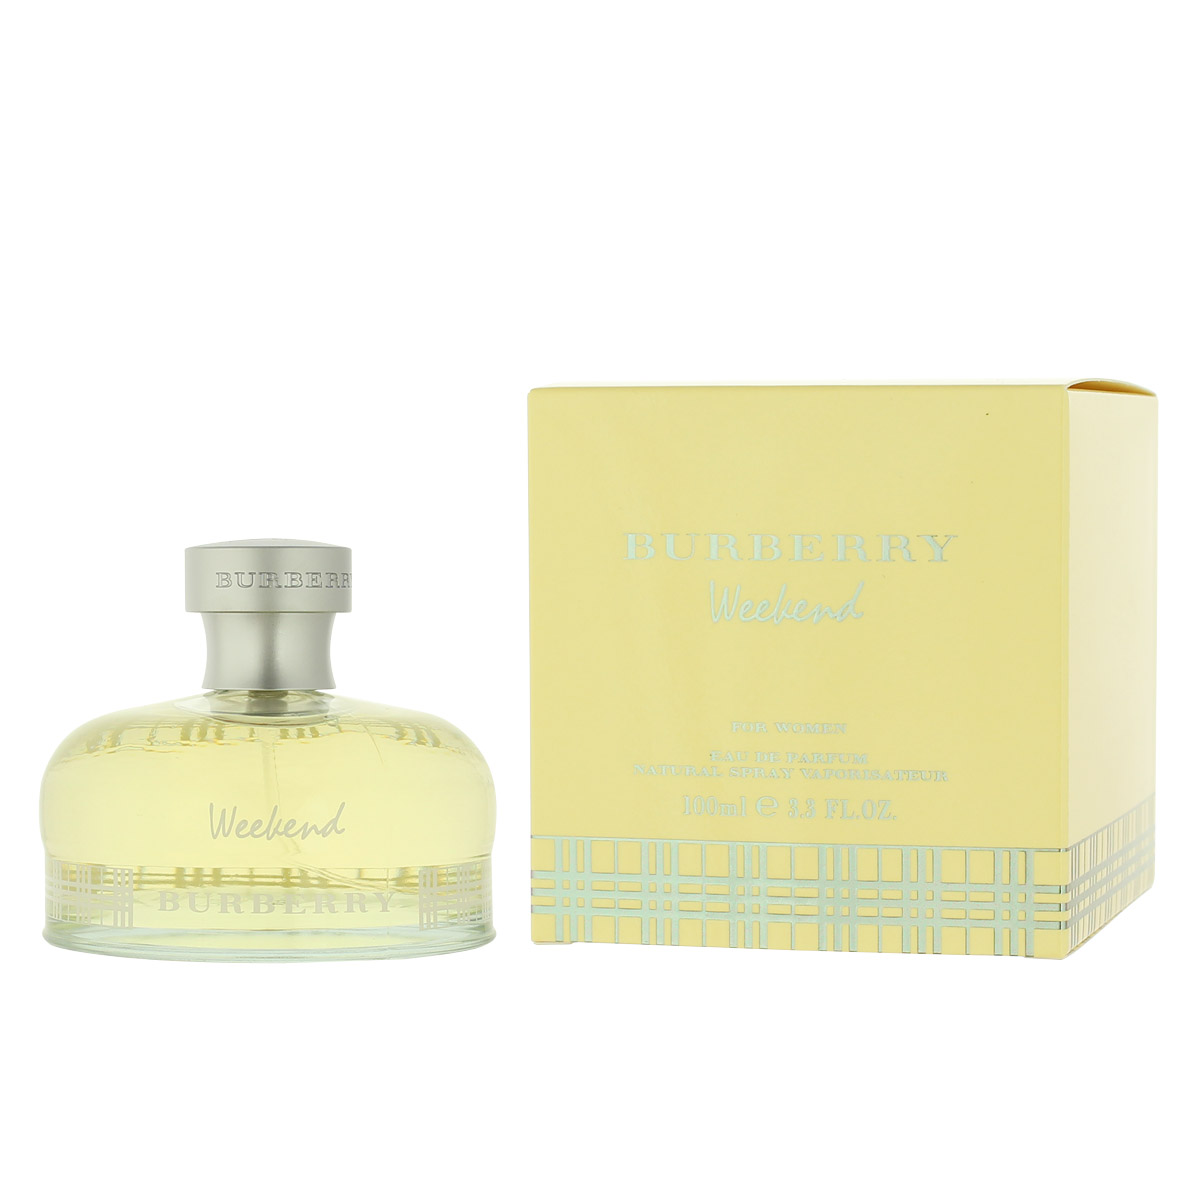 Burberry Weekend for Women Eau De Parfum 100 ml (woman) 44